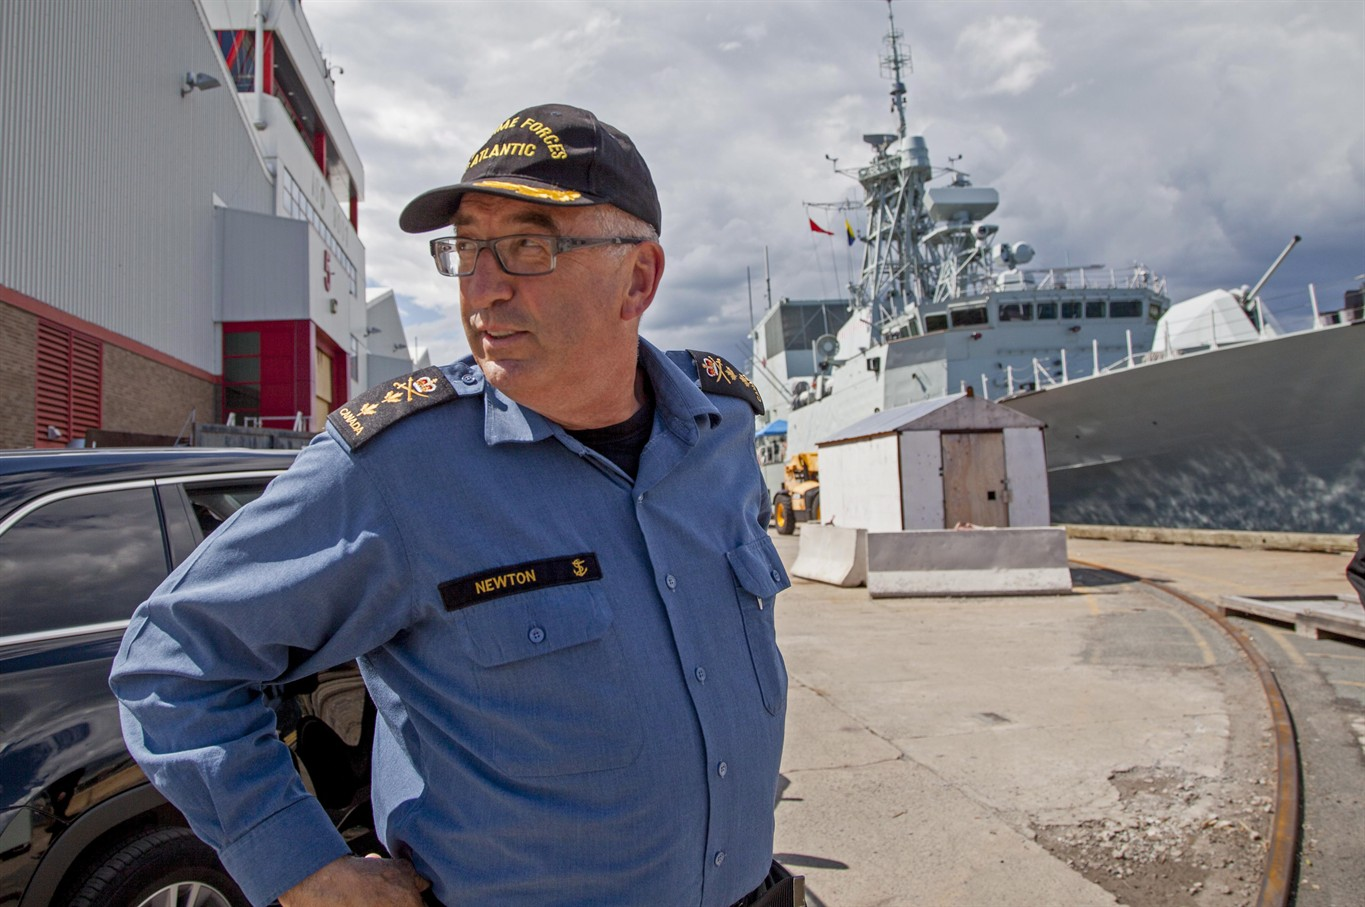 'This is a British Colony': Canadian Navy Members Disrupt Indigenous Ceremony